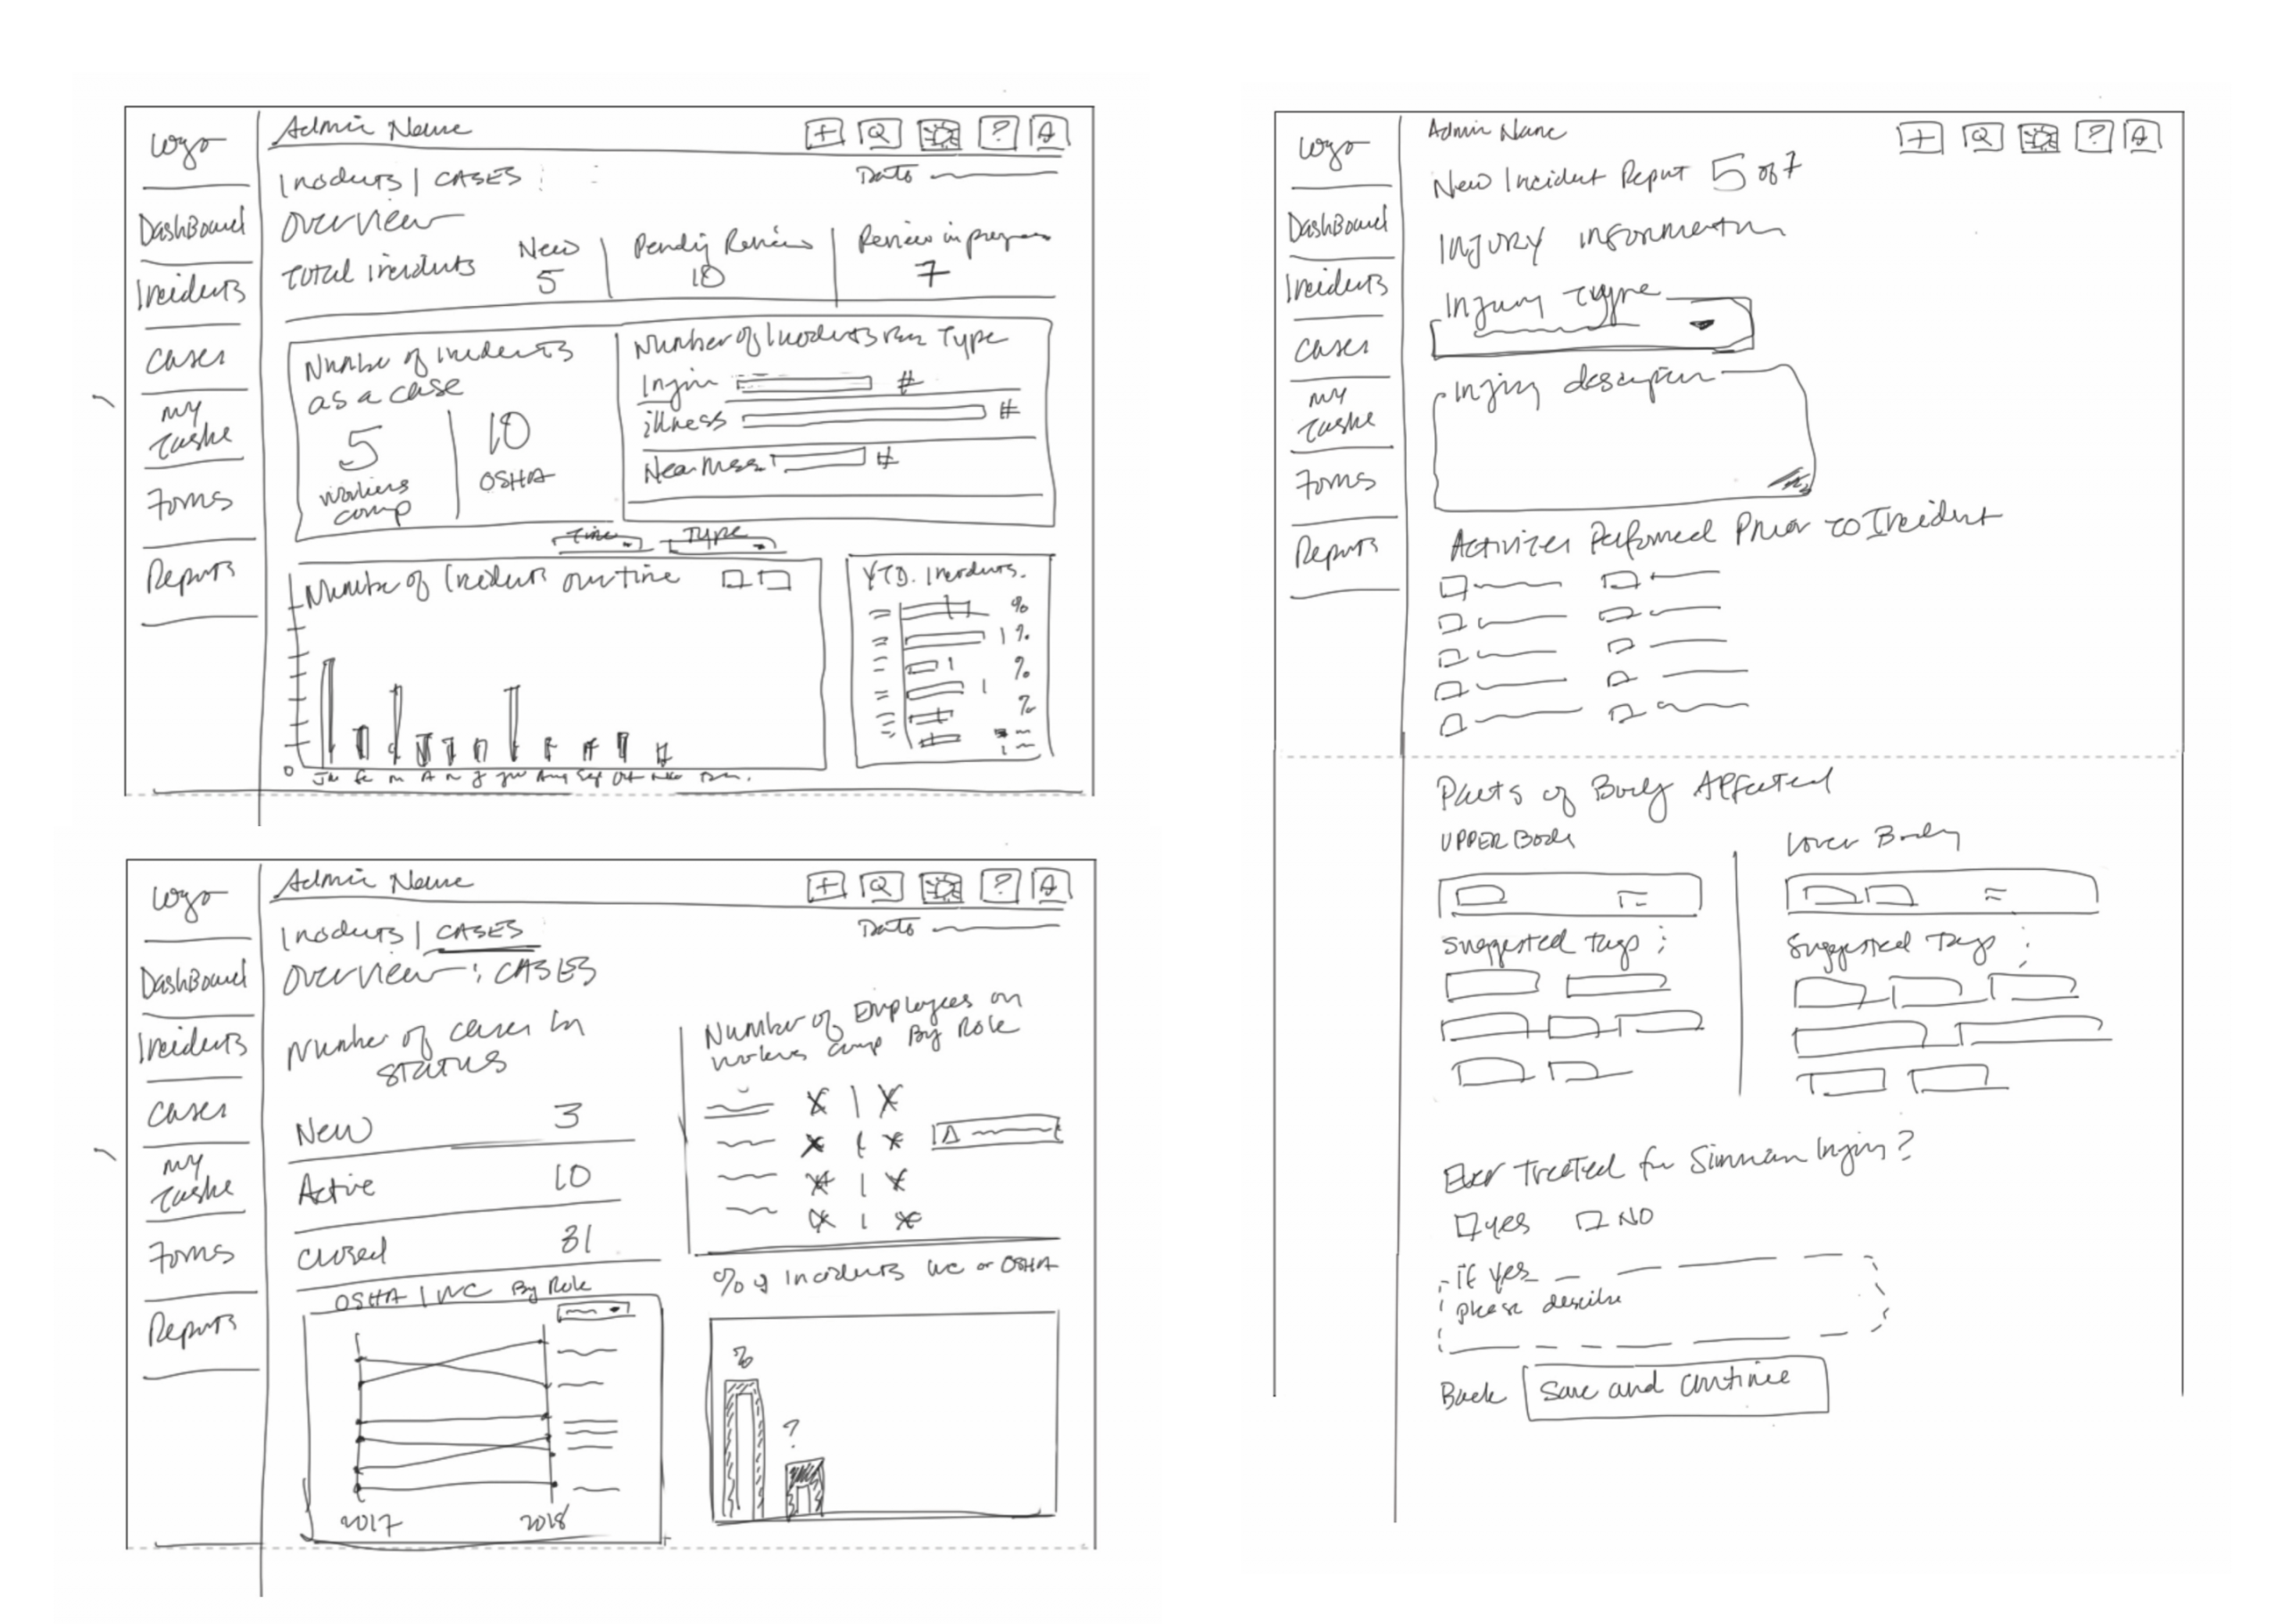 reporting system design sketches